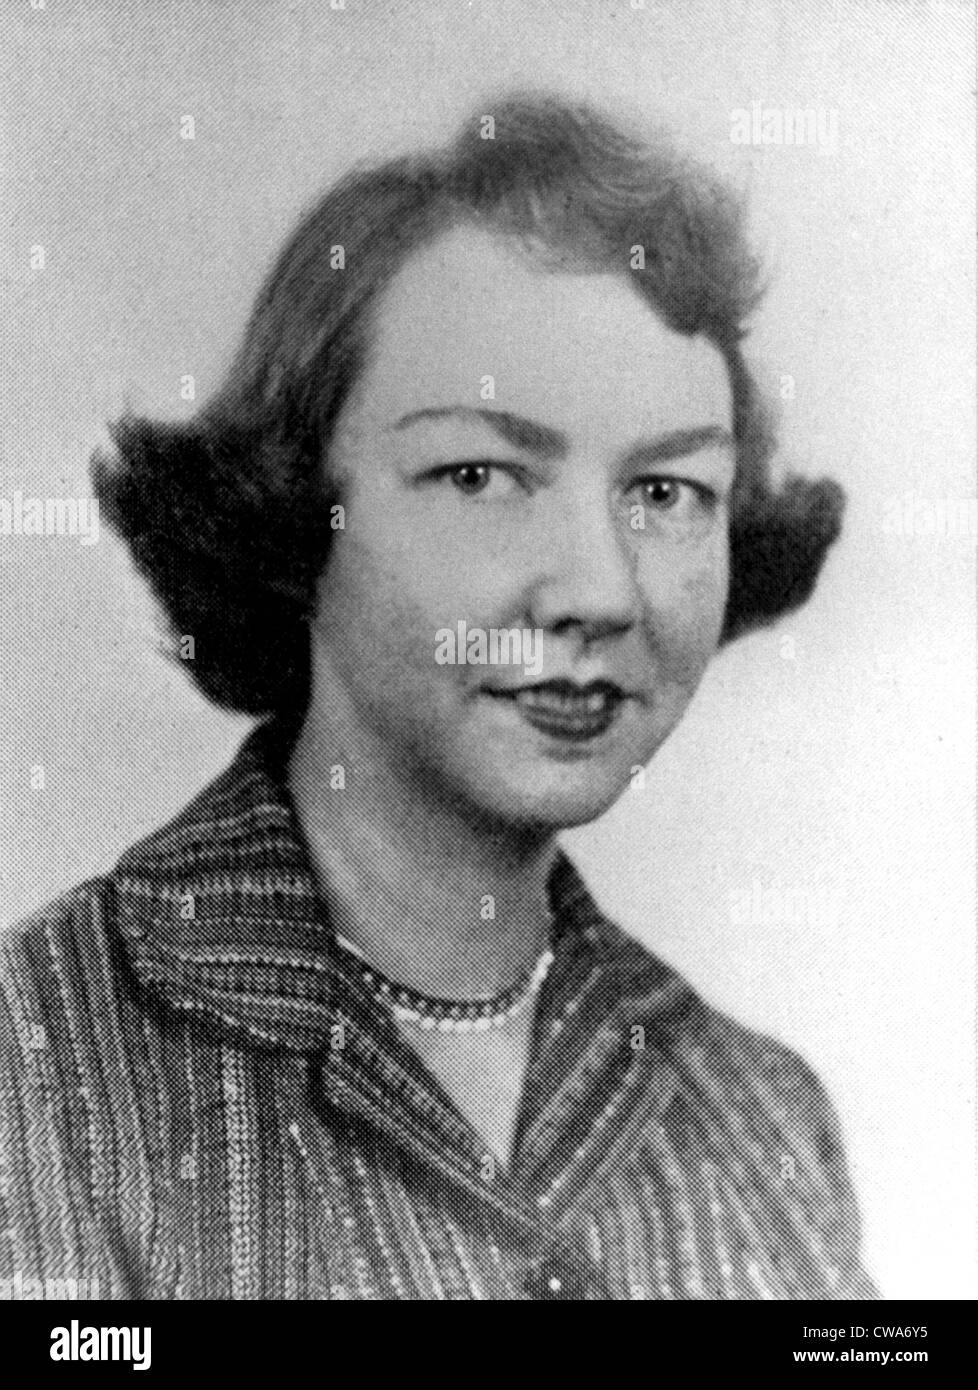 Flannery O'Connor, author. Courtesy: CSU Archives / Everett Collection - Stock Image